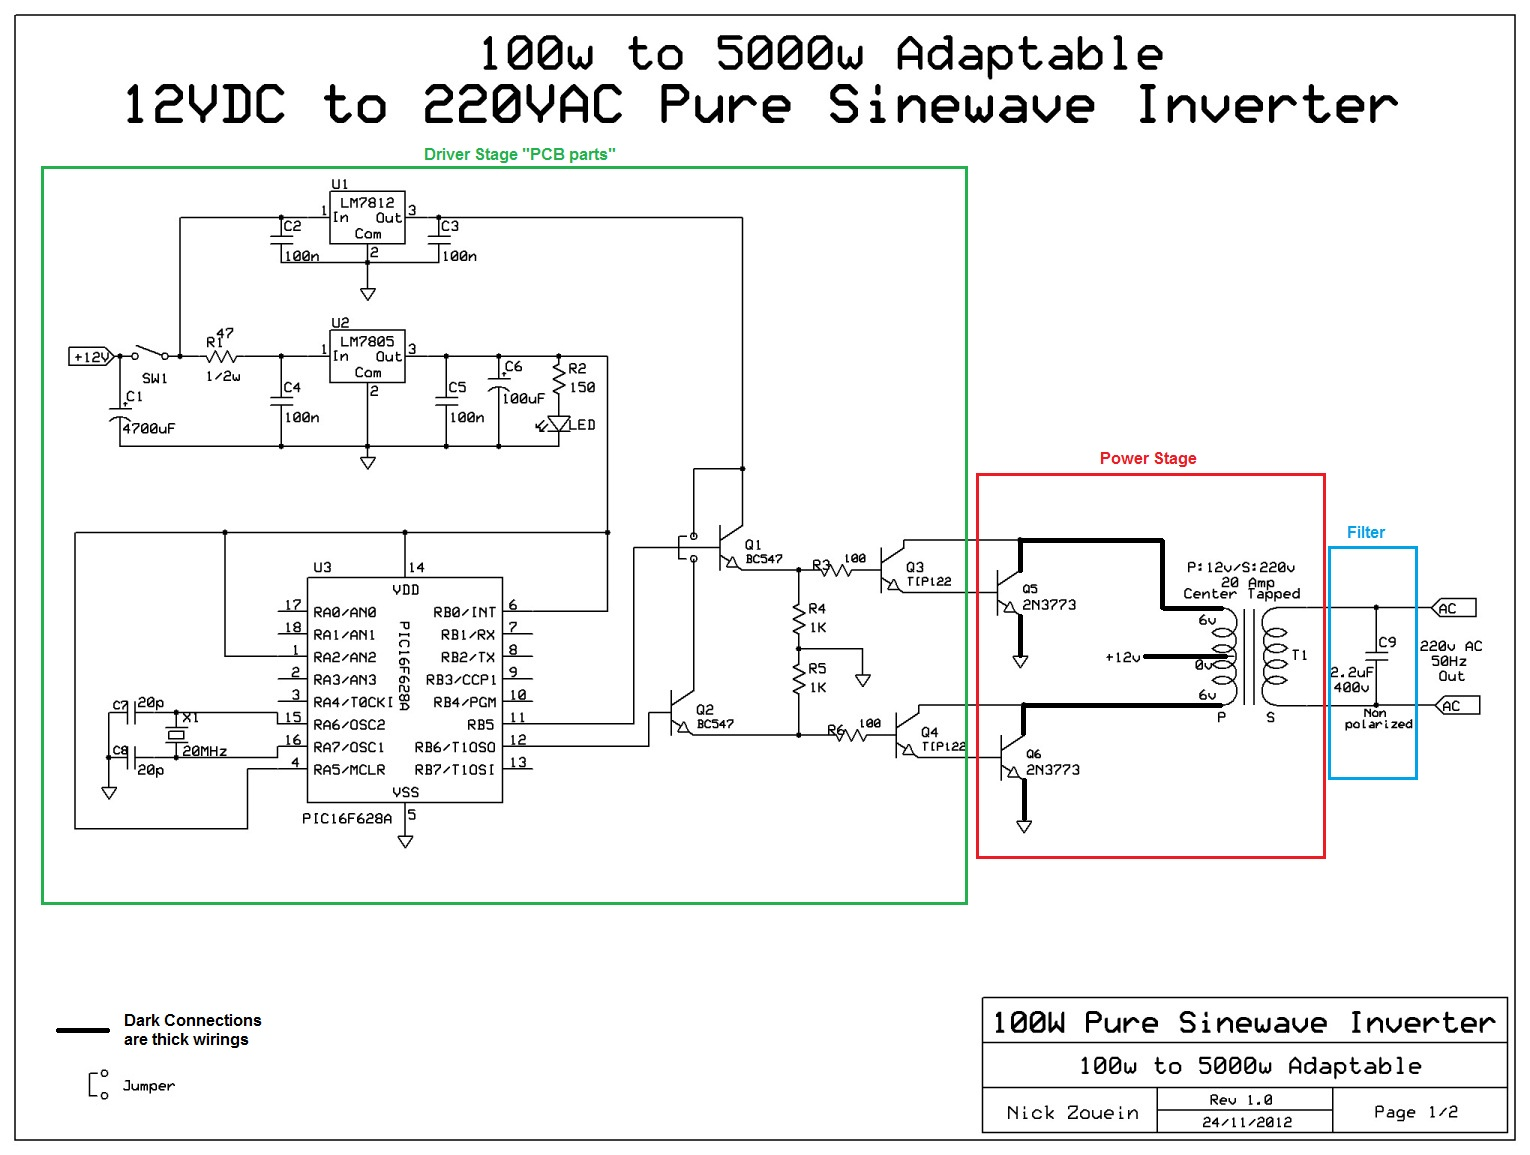 pure sine wave inverter circuit diagrams free download wiring diagram Basic Circuit Diagram adaptable 12vdc 220vac pure sinewave inverter 12v flasher circuit diagram pure sine wave inverter circuit diagrams free download